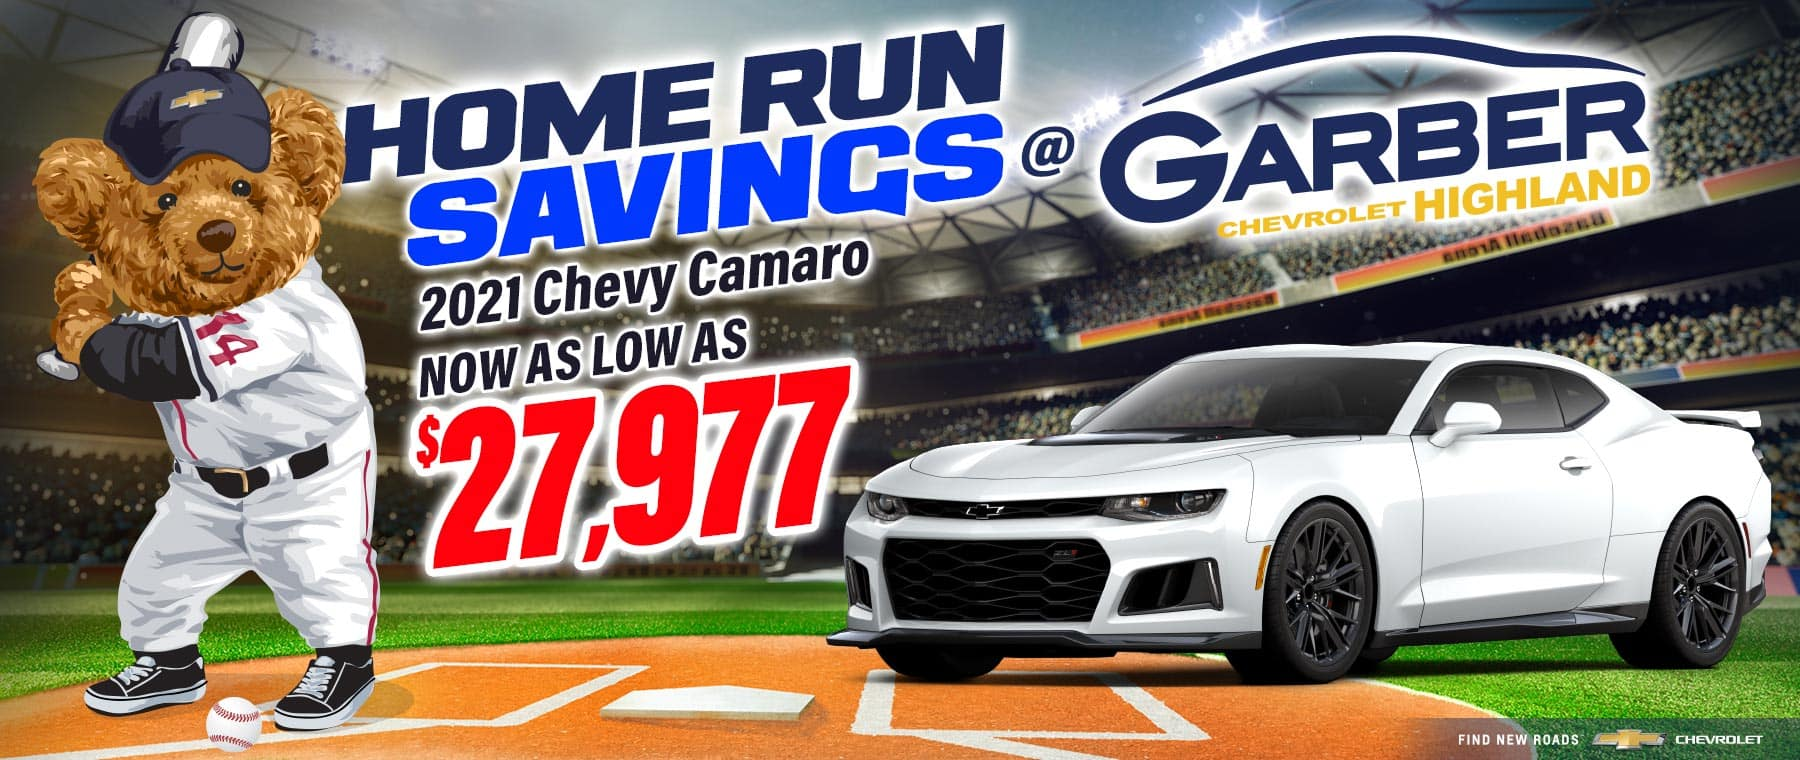 2021 Chevy Camaro - as low as $27,977